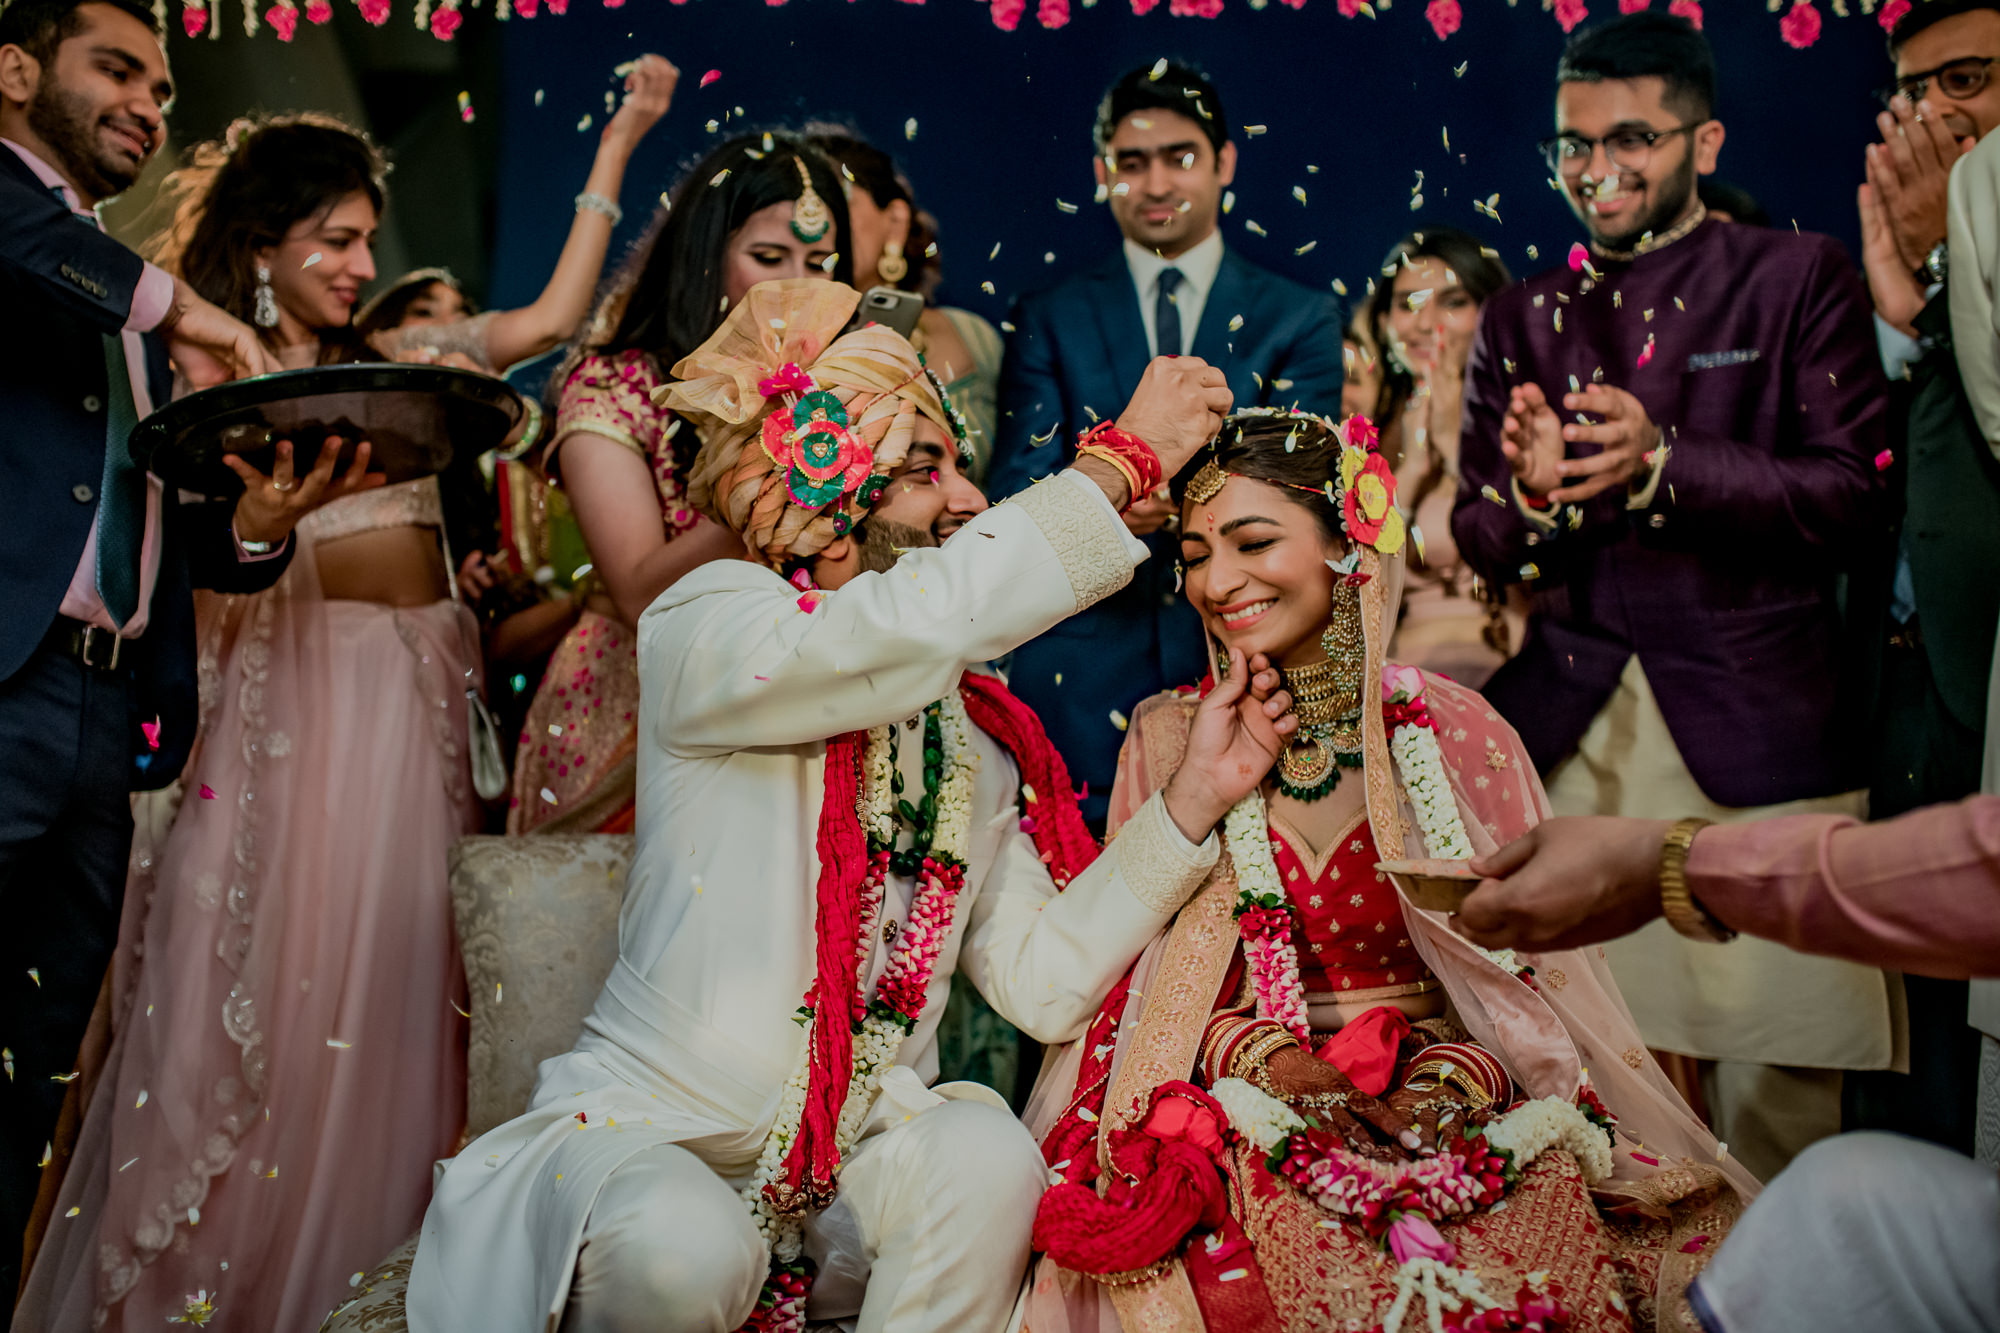 Groom blesses bride during ceremony - photo by Rimi Sen